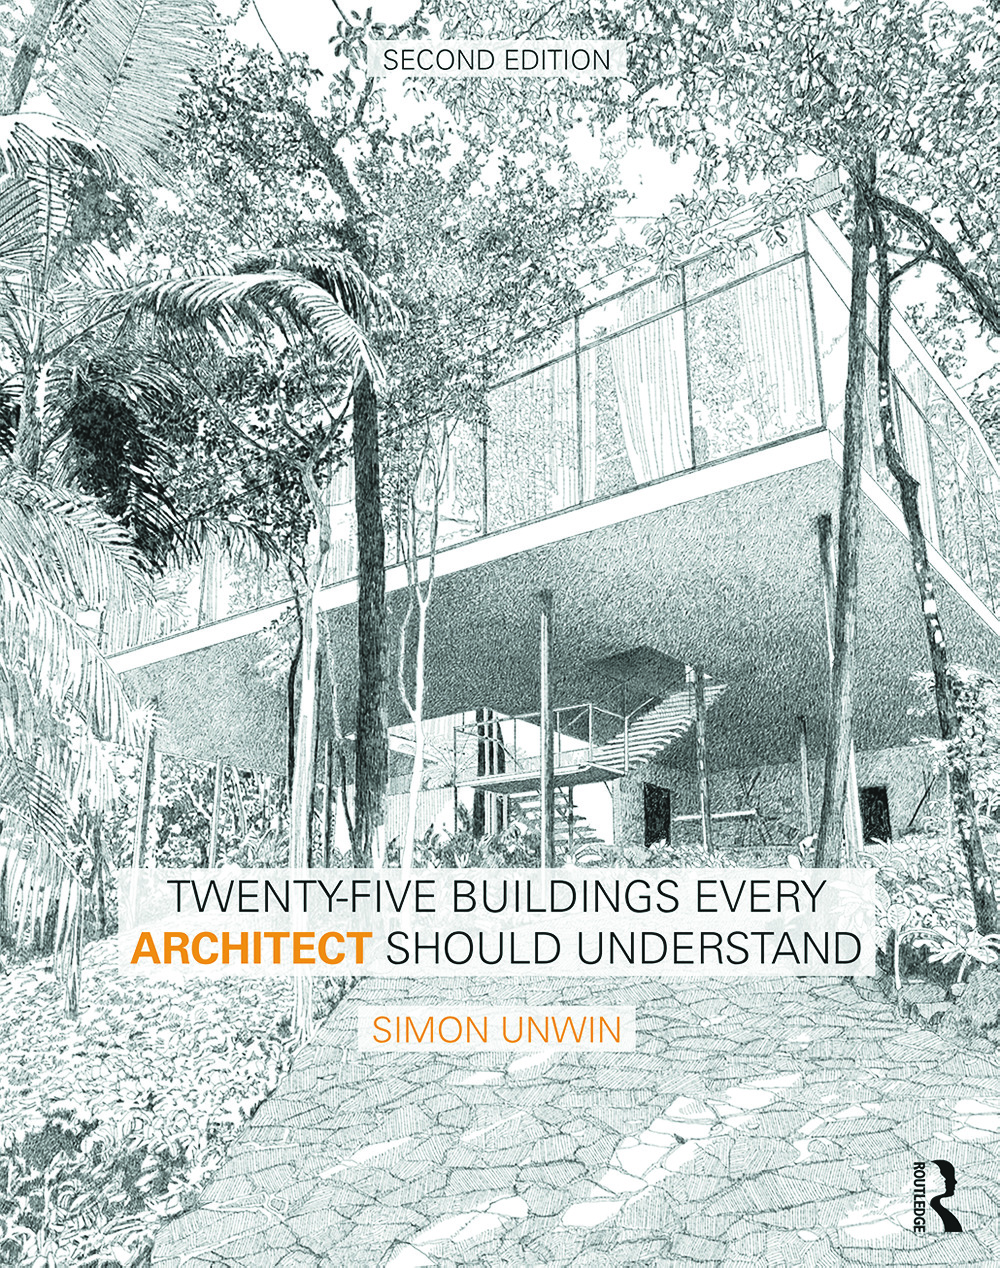 Twenty-Five Buildings Every Architect Should Understand: a revised and expanded edition of Twenty Buildings Every Architect Should Understand, 2nd Edition (Paperback) book cover